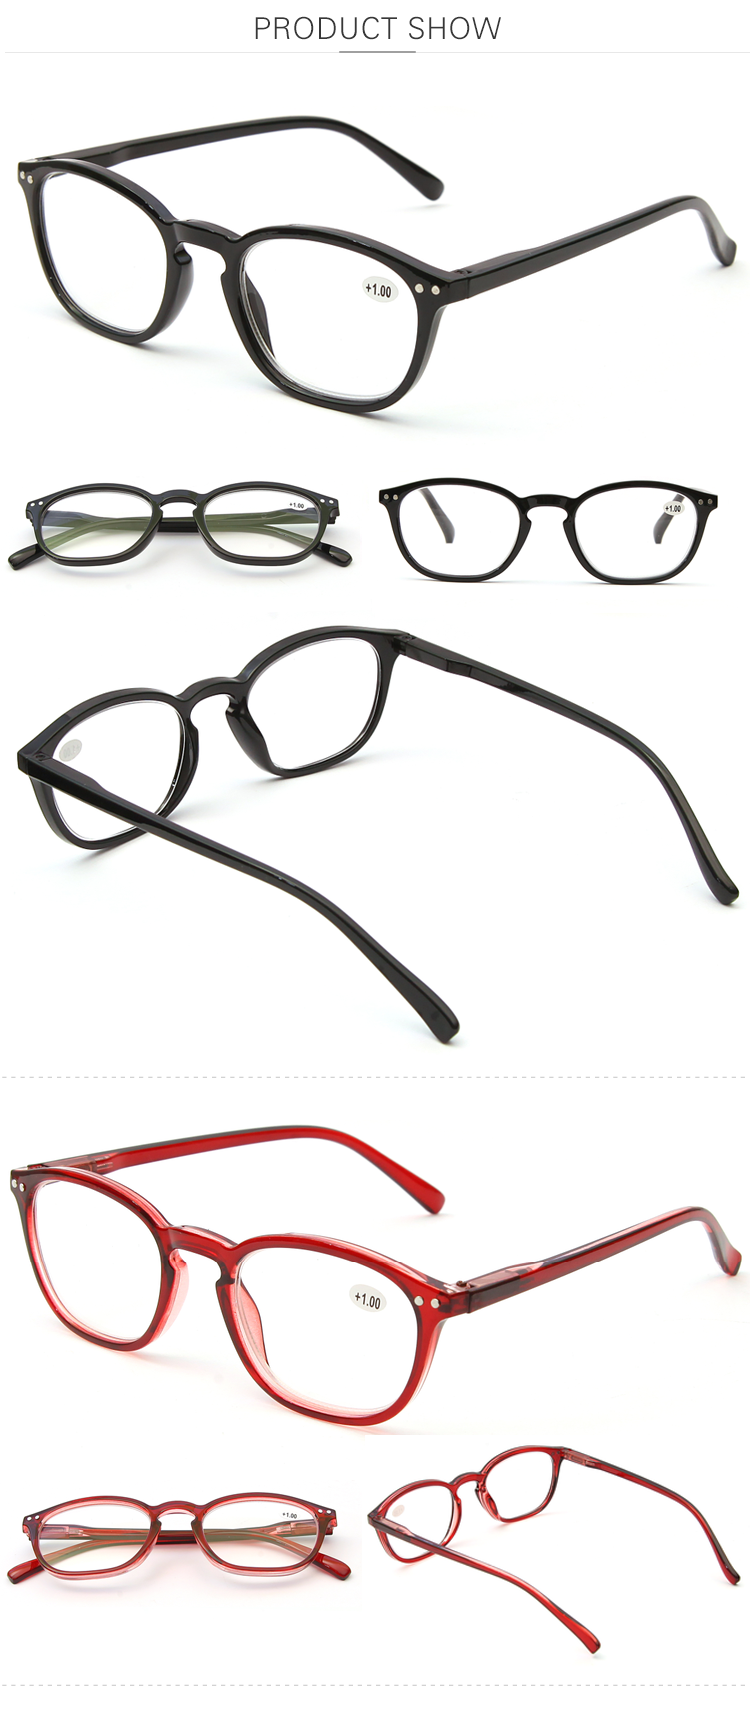 Presbyopic Dedicated Plastic Glasses Promotion Black Neutral Reading Eye Glasses